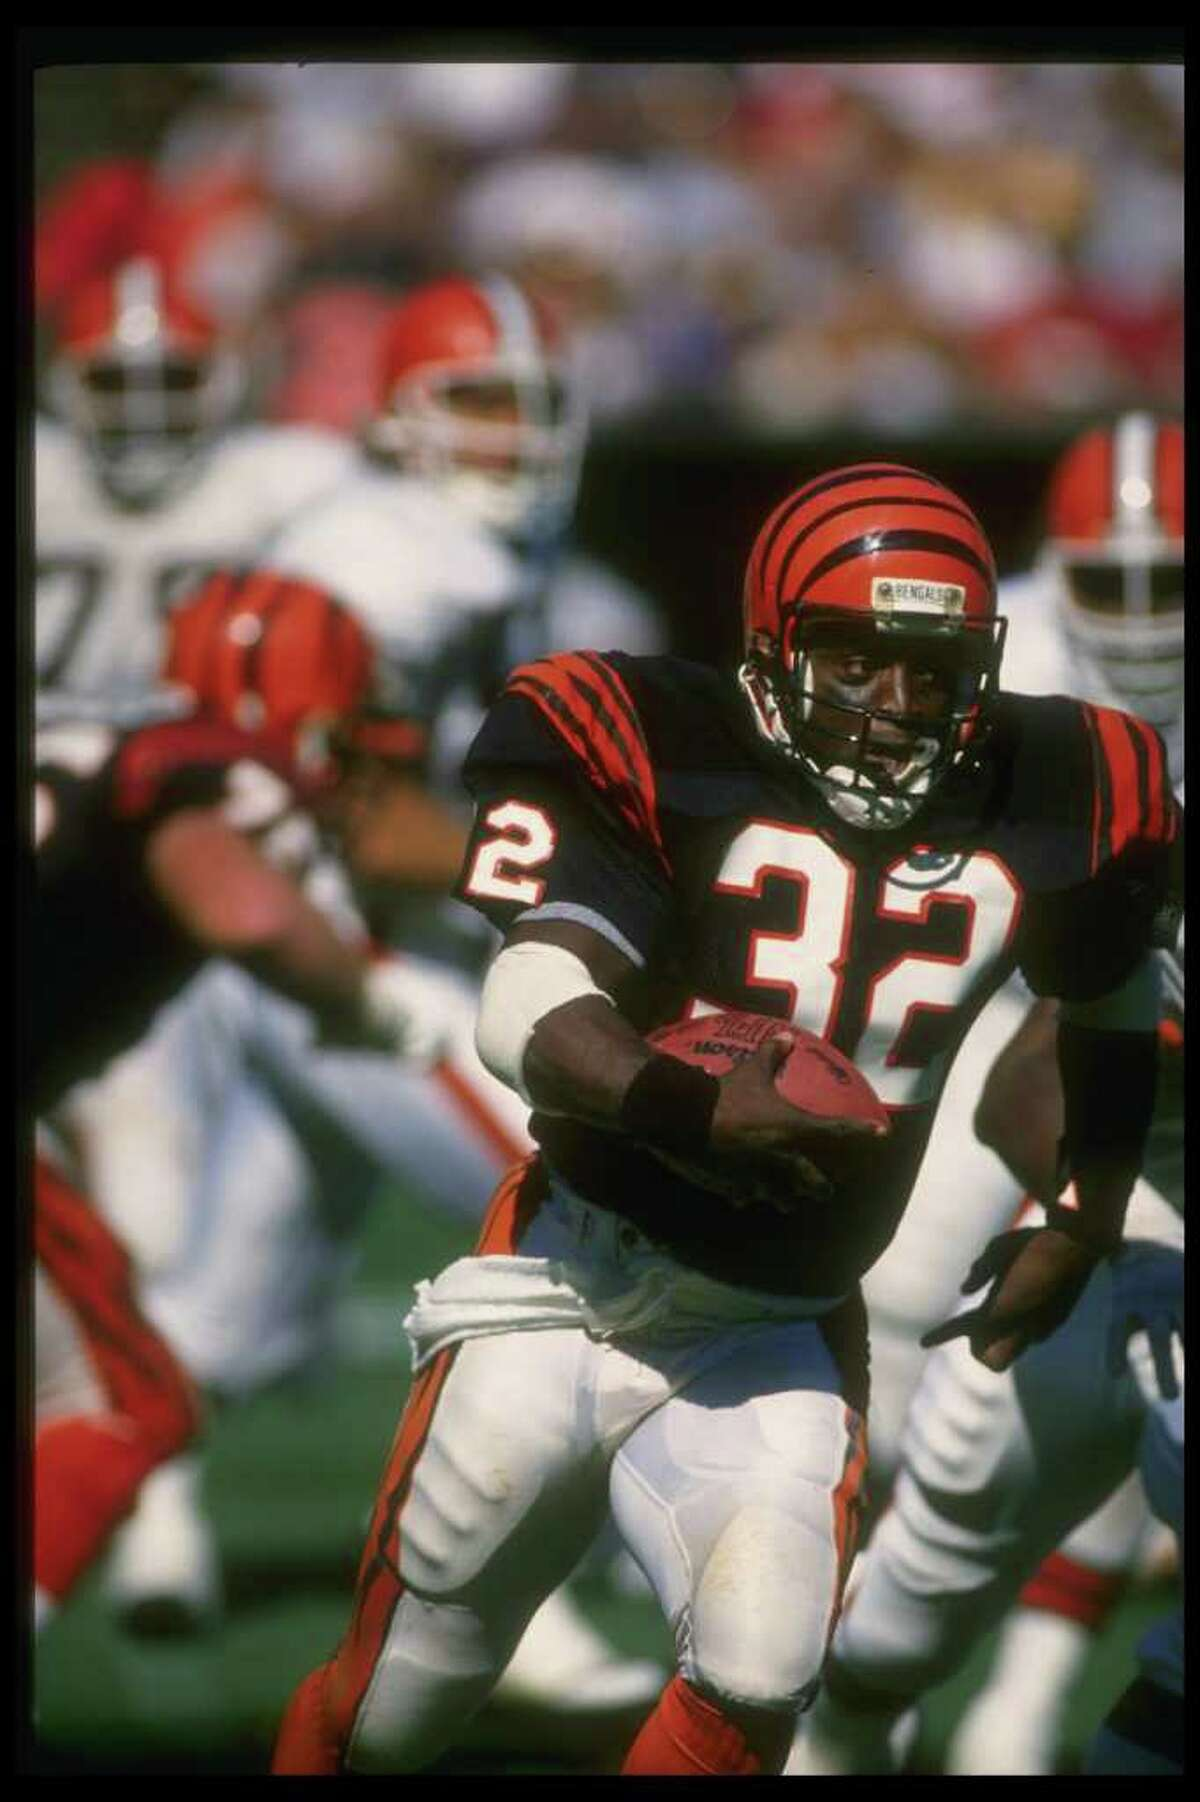 The Goats10. Stanley Wilson (Super Bowl XXIII) The night before the Super Bowl, Bengals running back Stanley Wilson was caught using cocaine in his Miami hotel room. He was suspended immediately, and the 49ers came back for a tremendous 20-16 win the next day. Wilson, however, never did. It was his third and final drug violation, and he was suspended from the NFL for life.